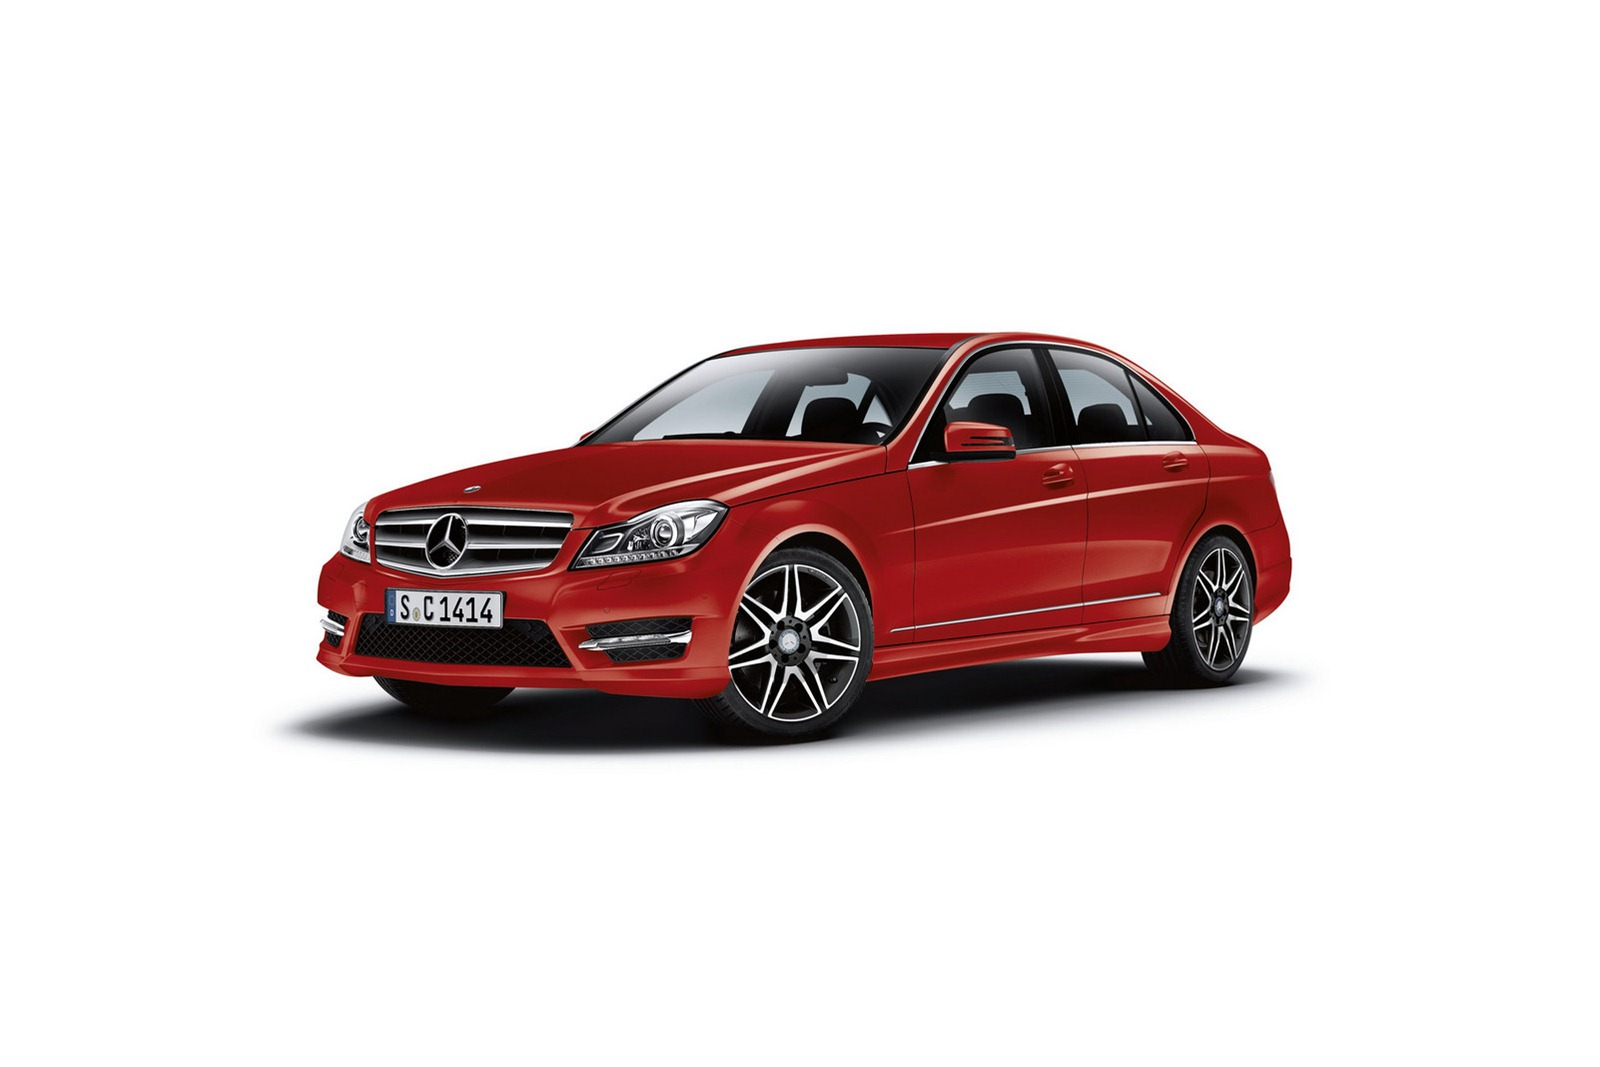 2013 mercedes c class gets new trim levels and revised engine in uk. Black Bedroom Furniture Sets. Home Design Ideas